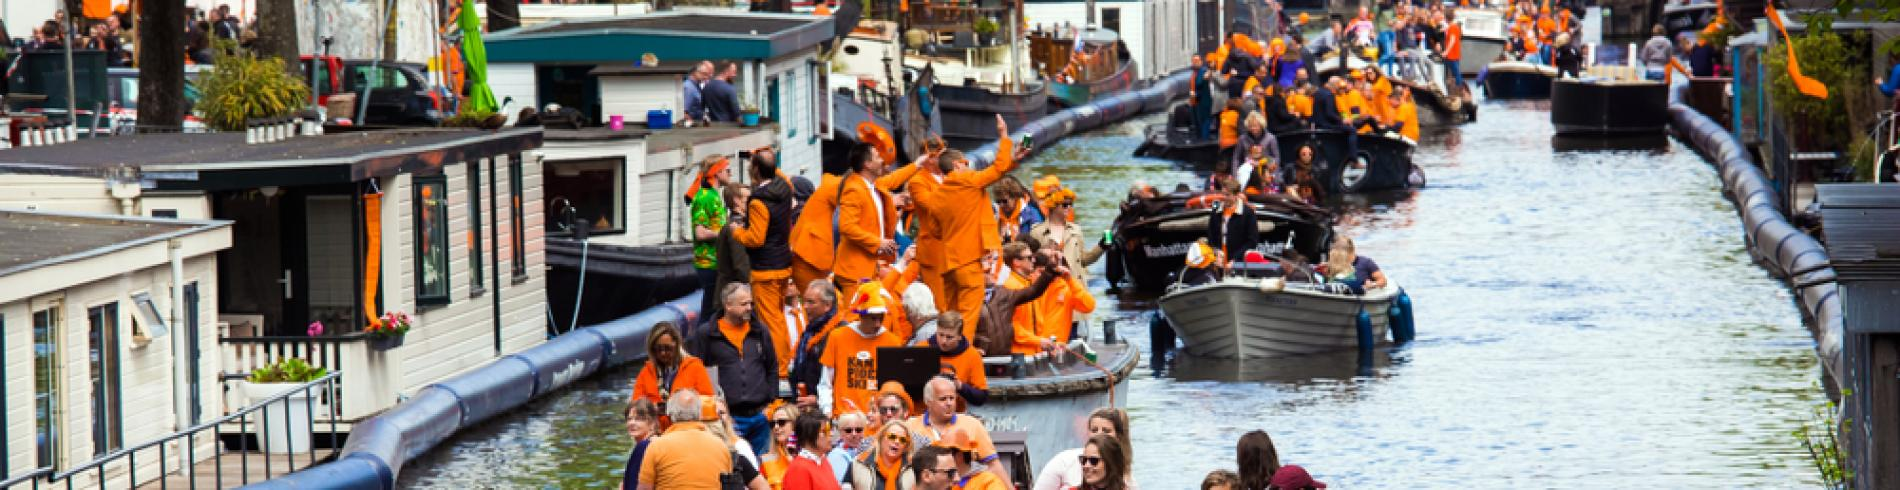 King's day in Netherlands